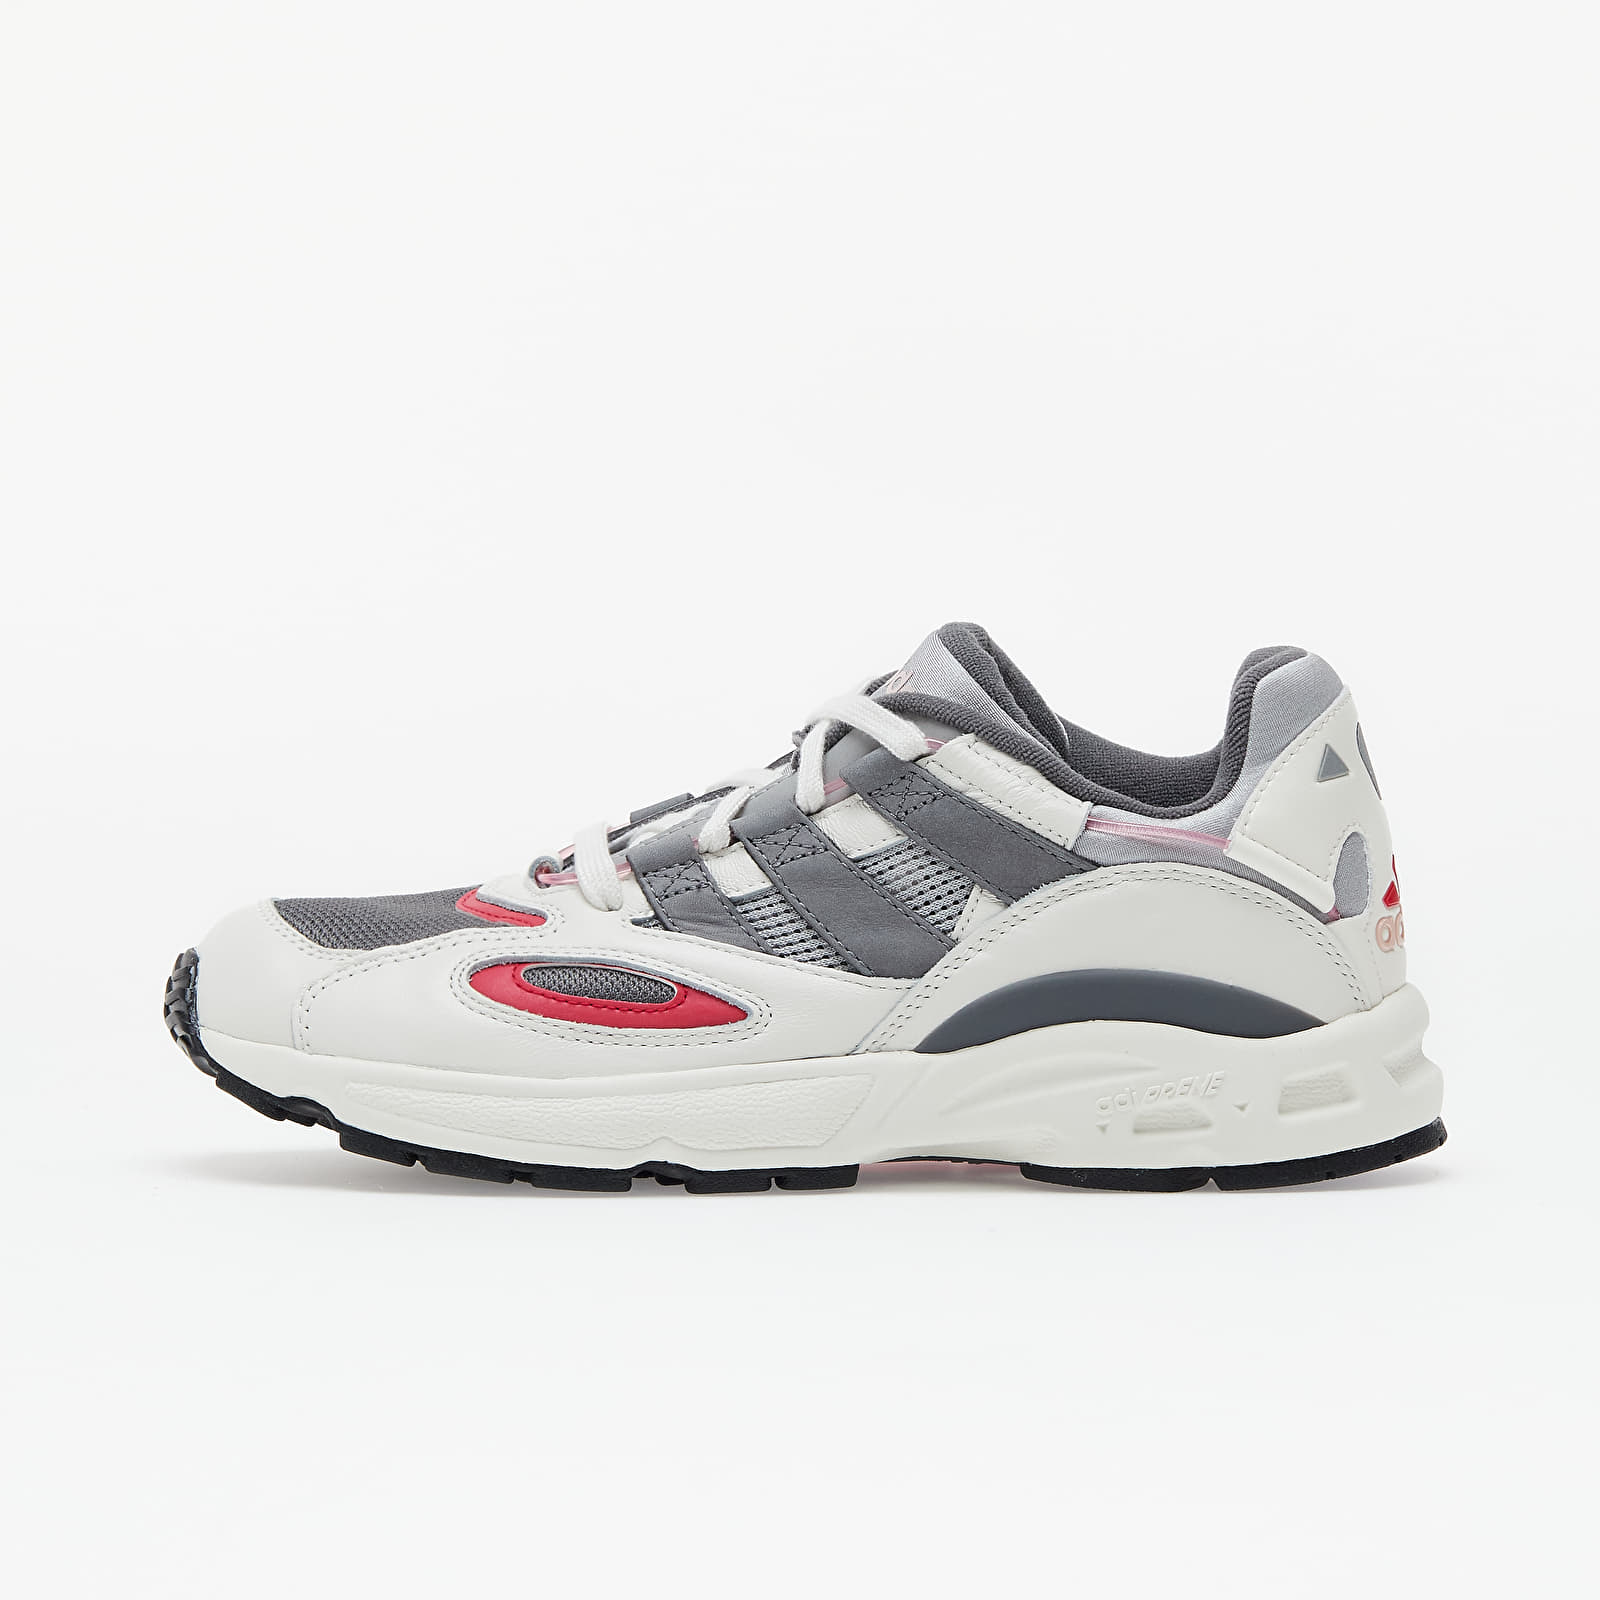 Férfi cipők adidas LXCON 94 Cloud White/ Grey Four/ Energy Pink